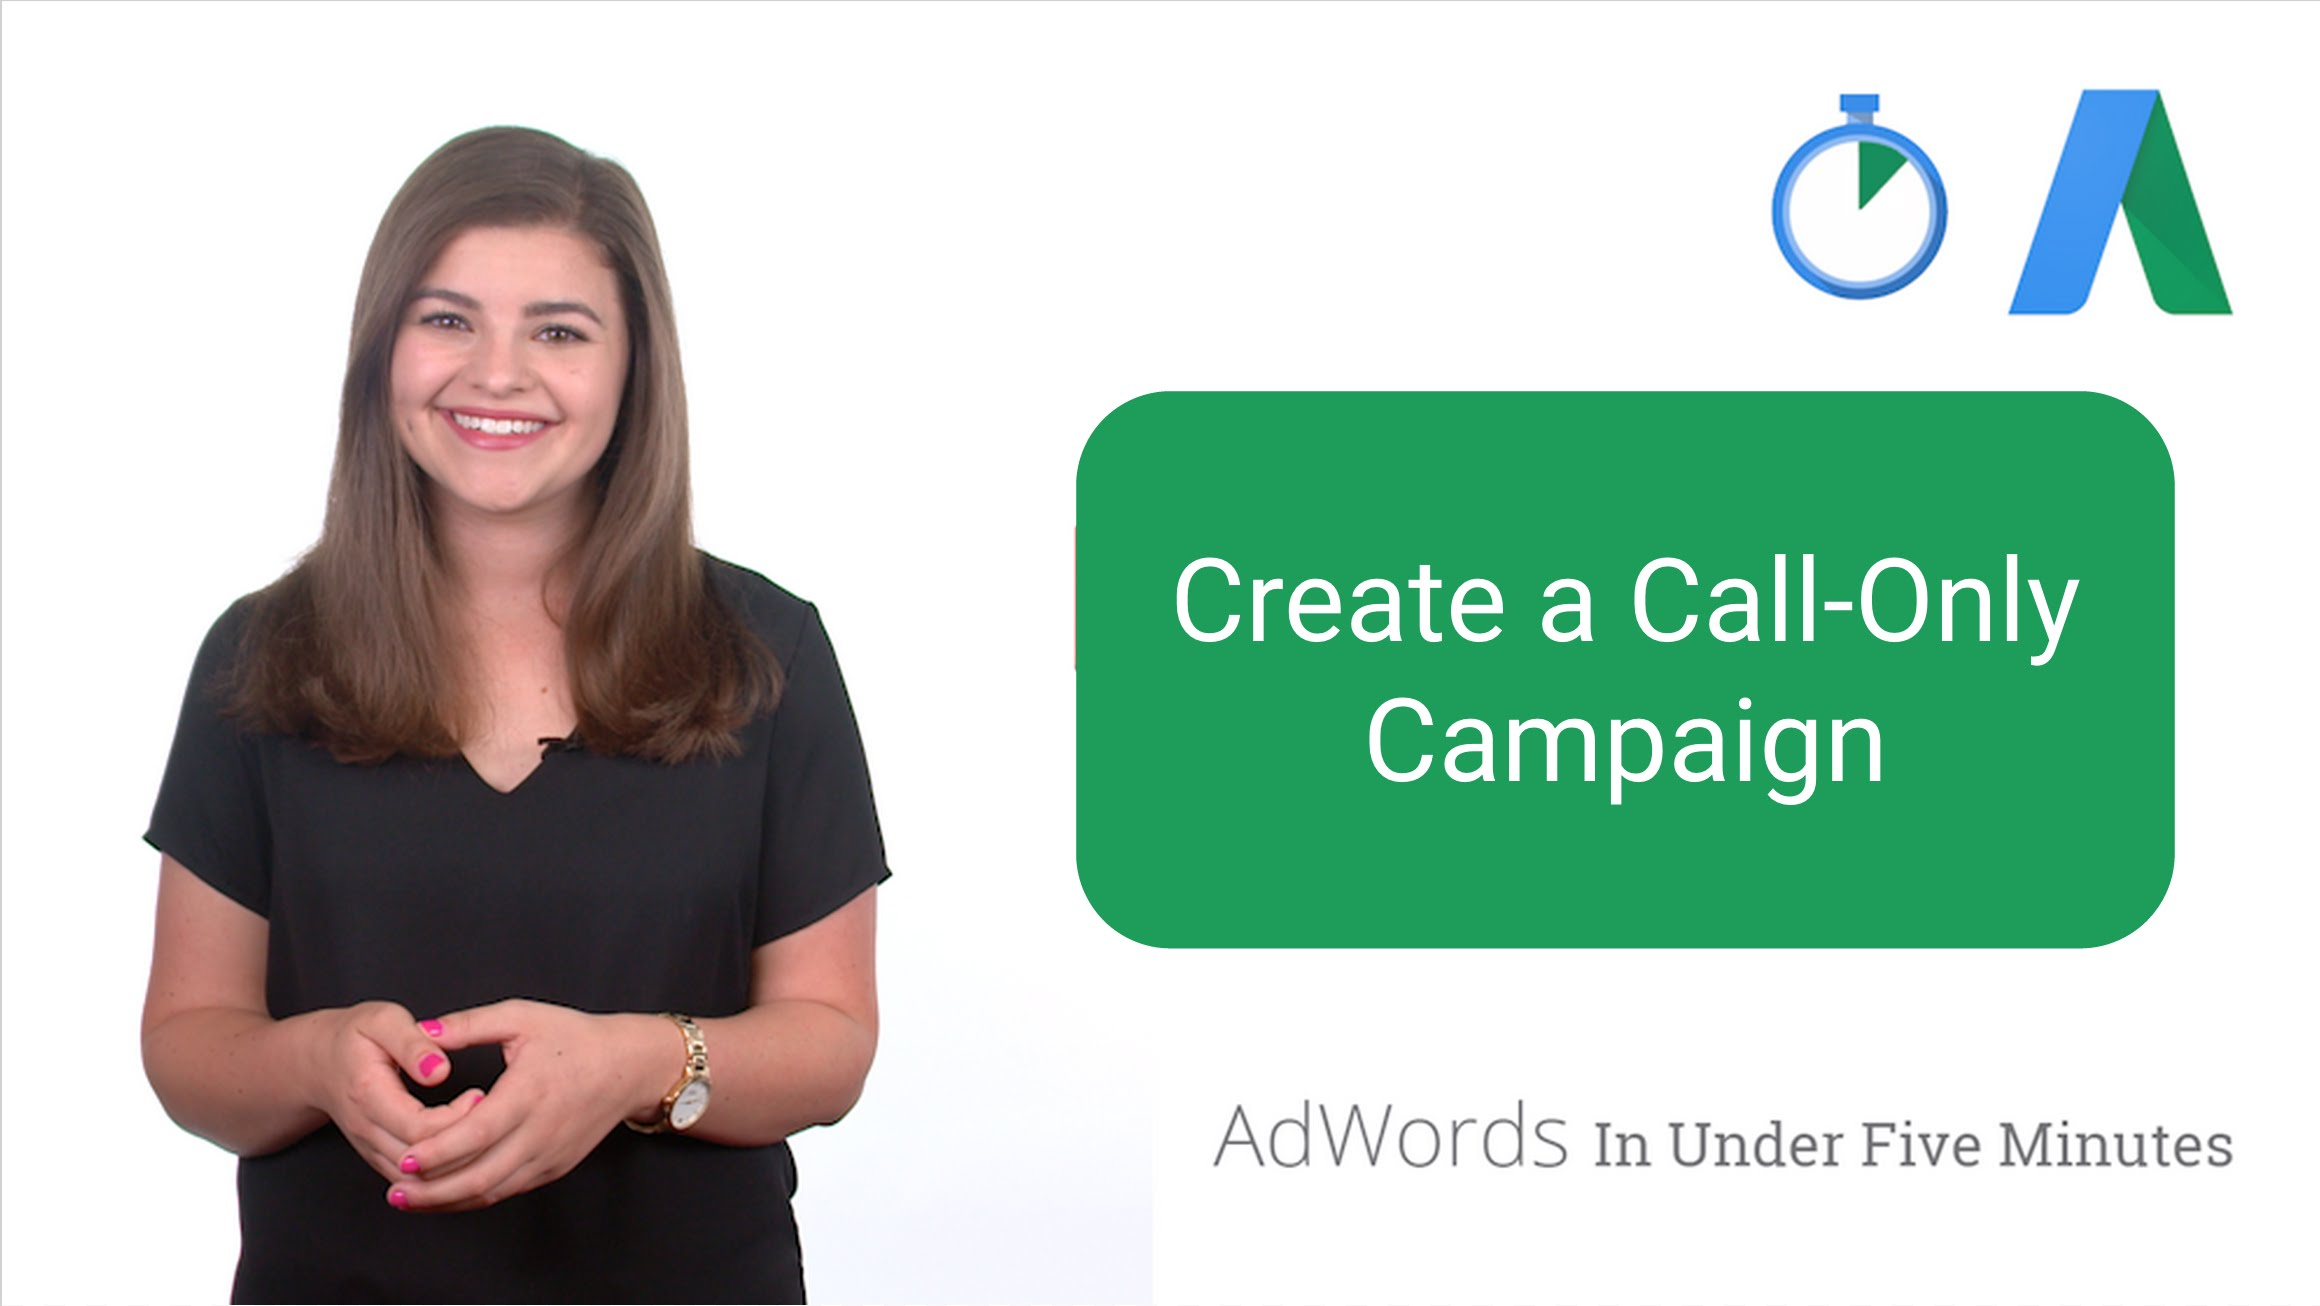 How to Create a Call-Only Campaign